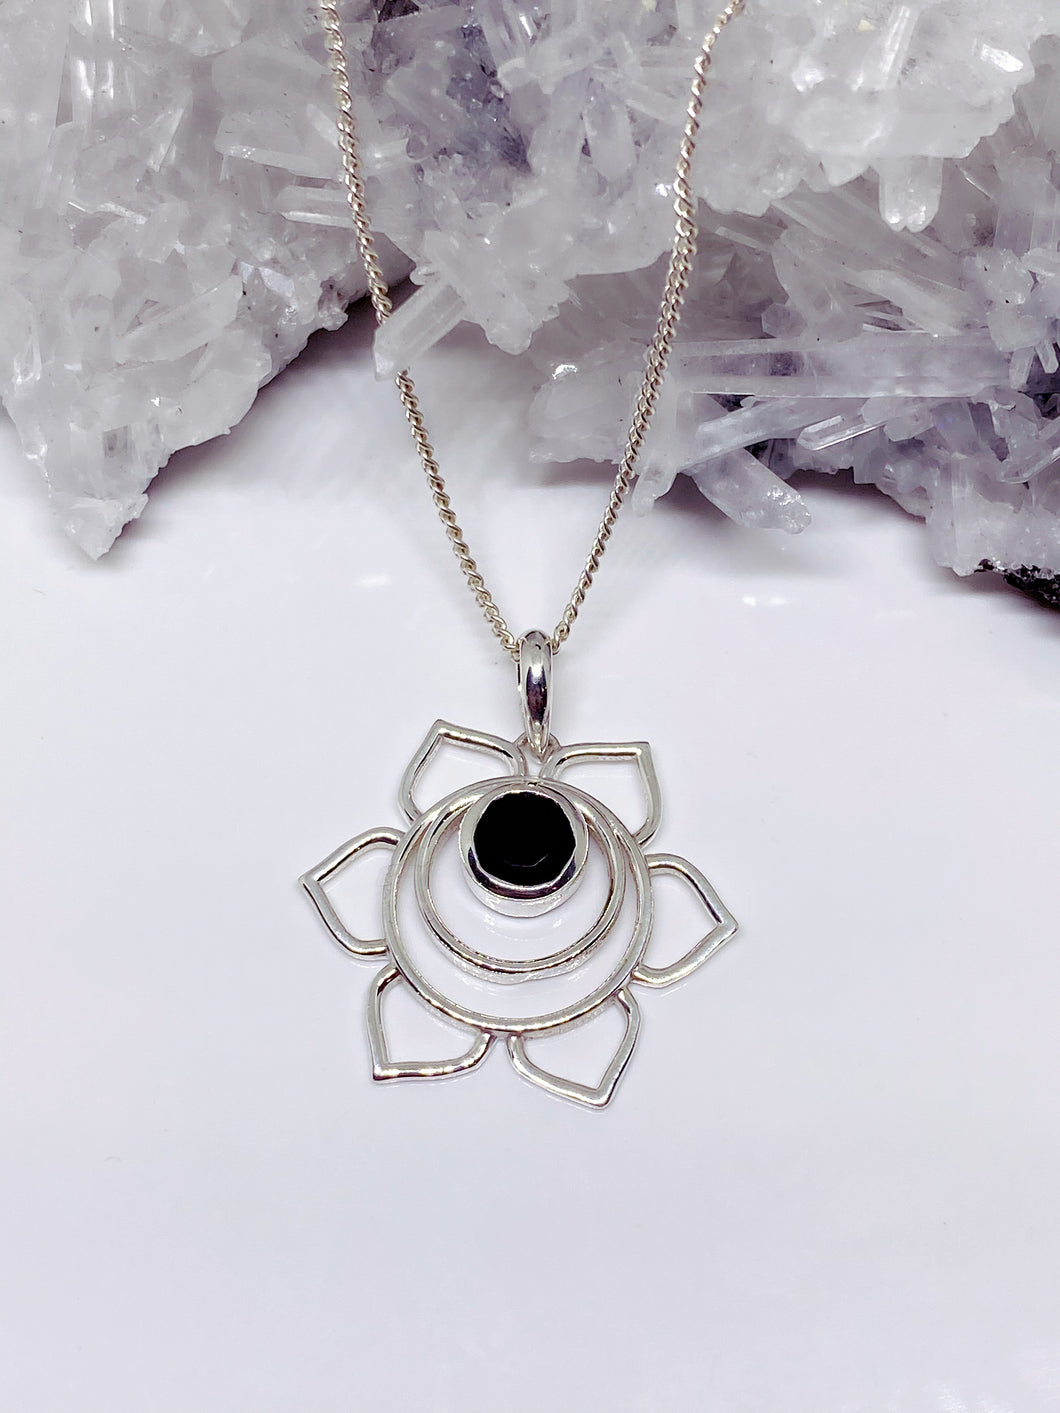 Black Onyx Pendant - Sterling Silver with Chain